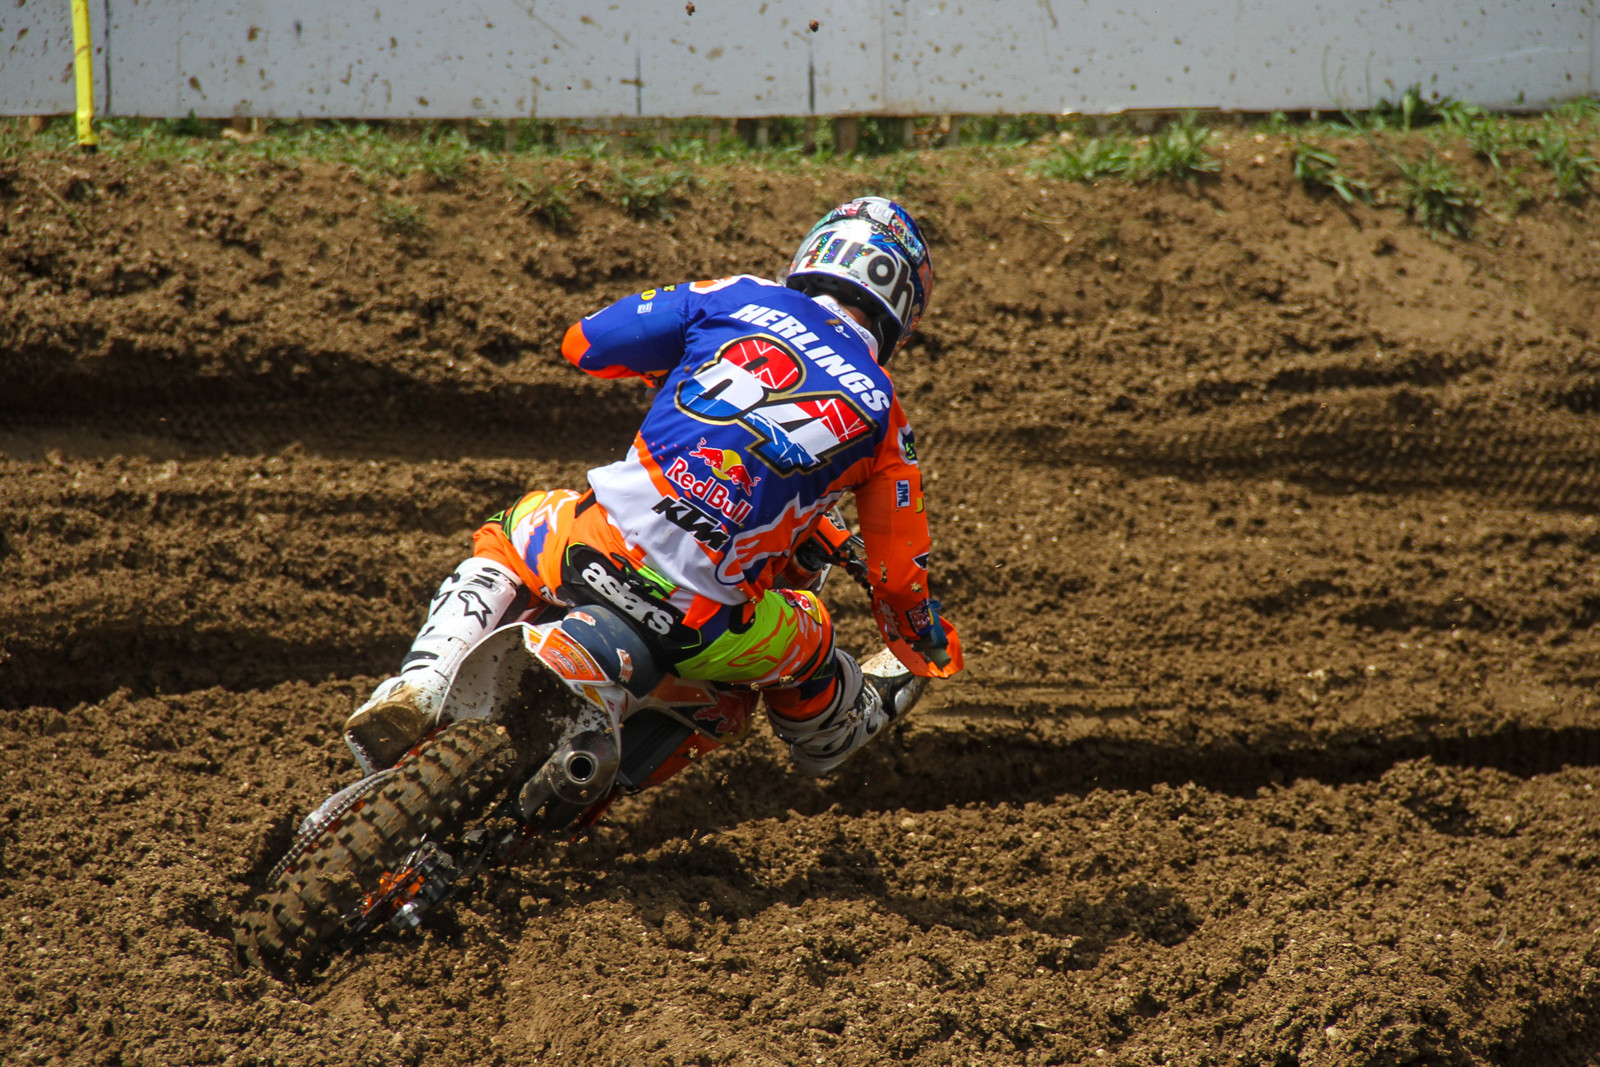 Another one-one performance allowed Jeffrey Herlings to stretch his points gap over Antonio Cairoli by 60 points.